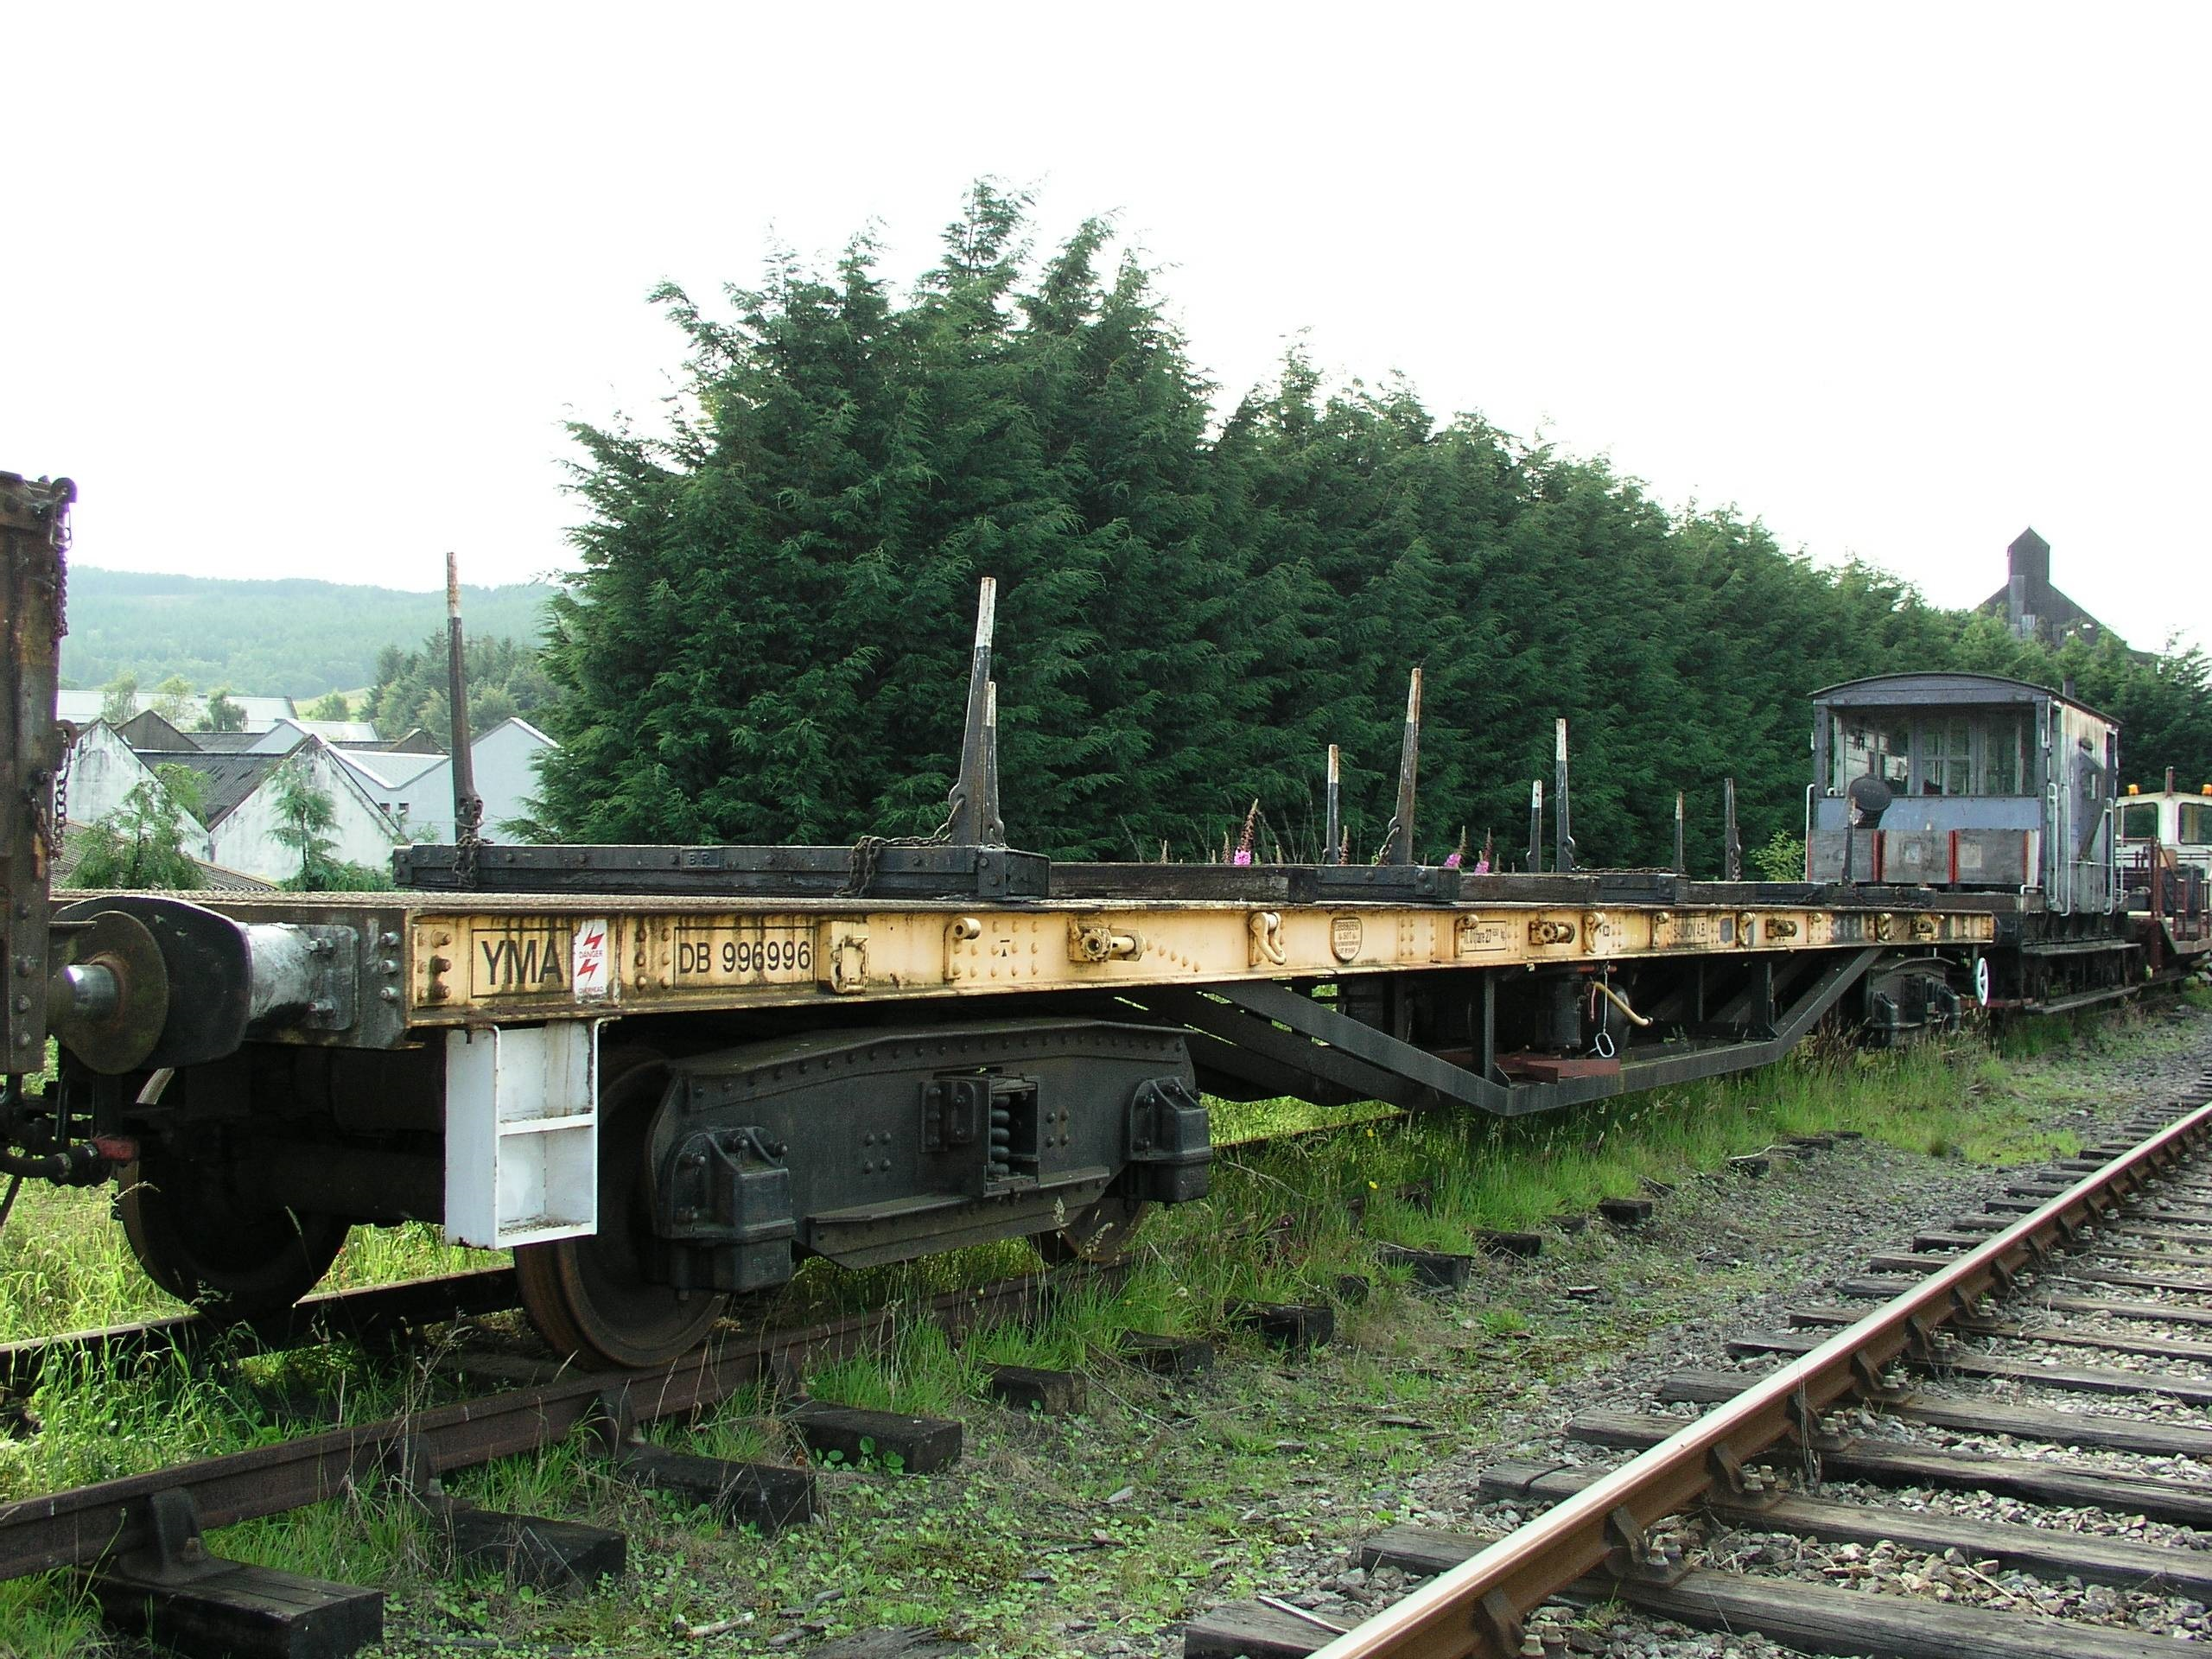 Rolling Stock - Keith and Dufftown Railway